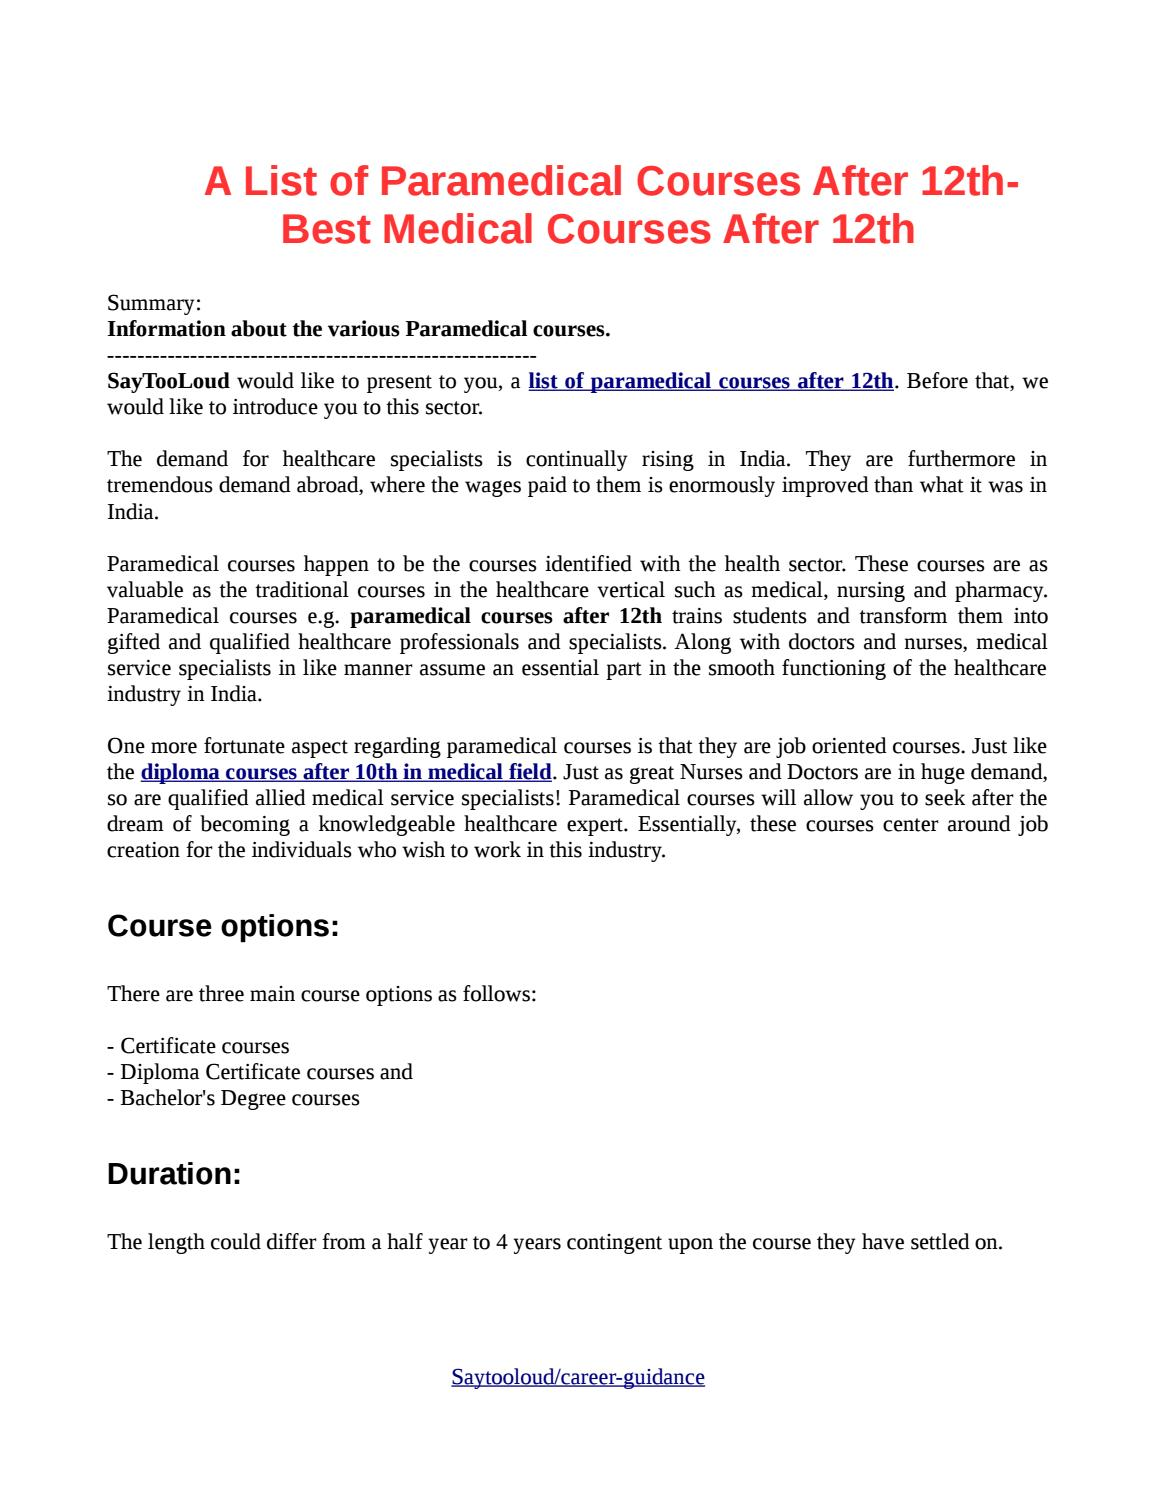 A list of paramedical courses after 12th best medical